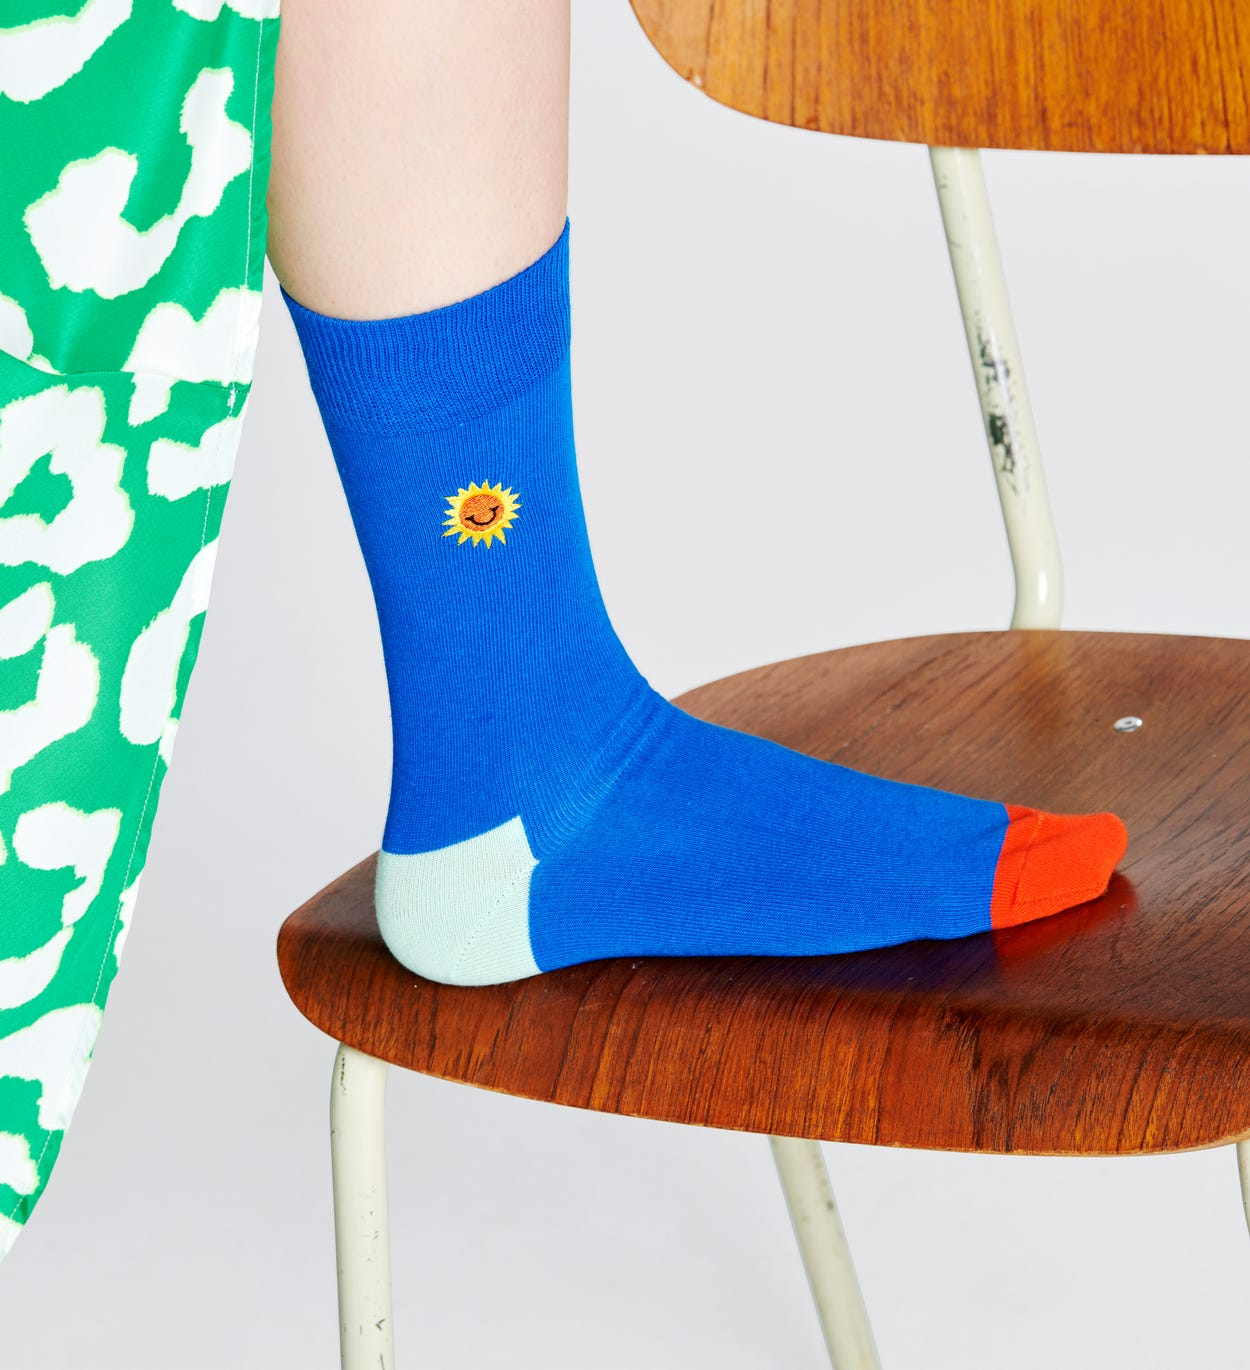 Embroidery Sunny Smile 양말, 블루 | Happy Socks